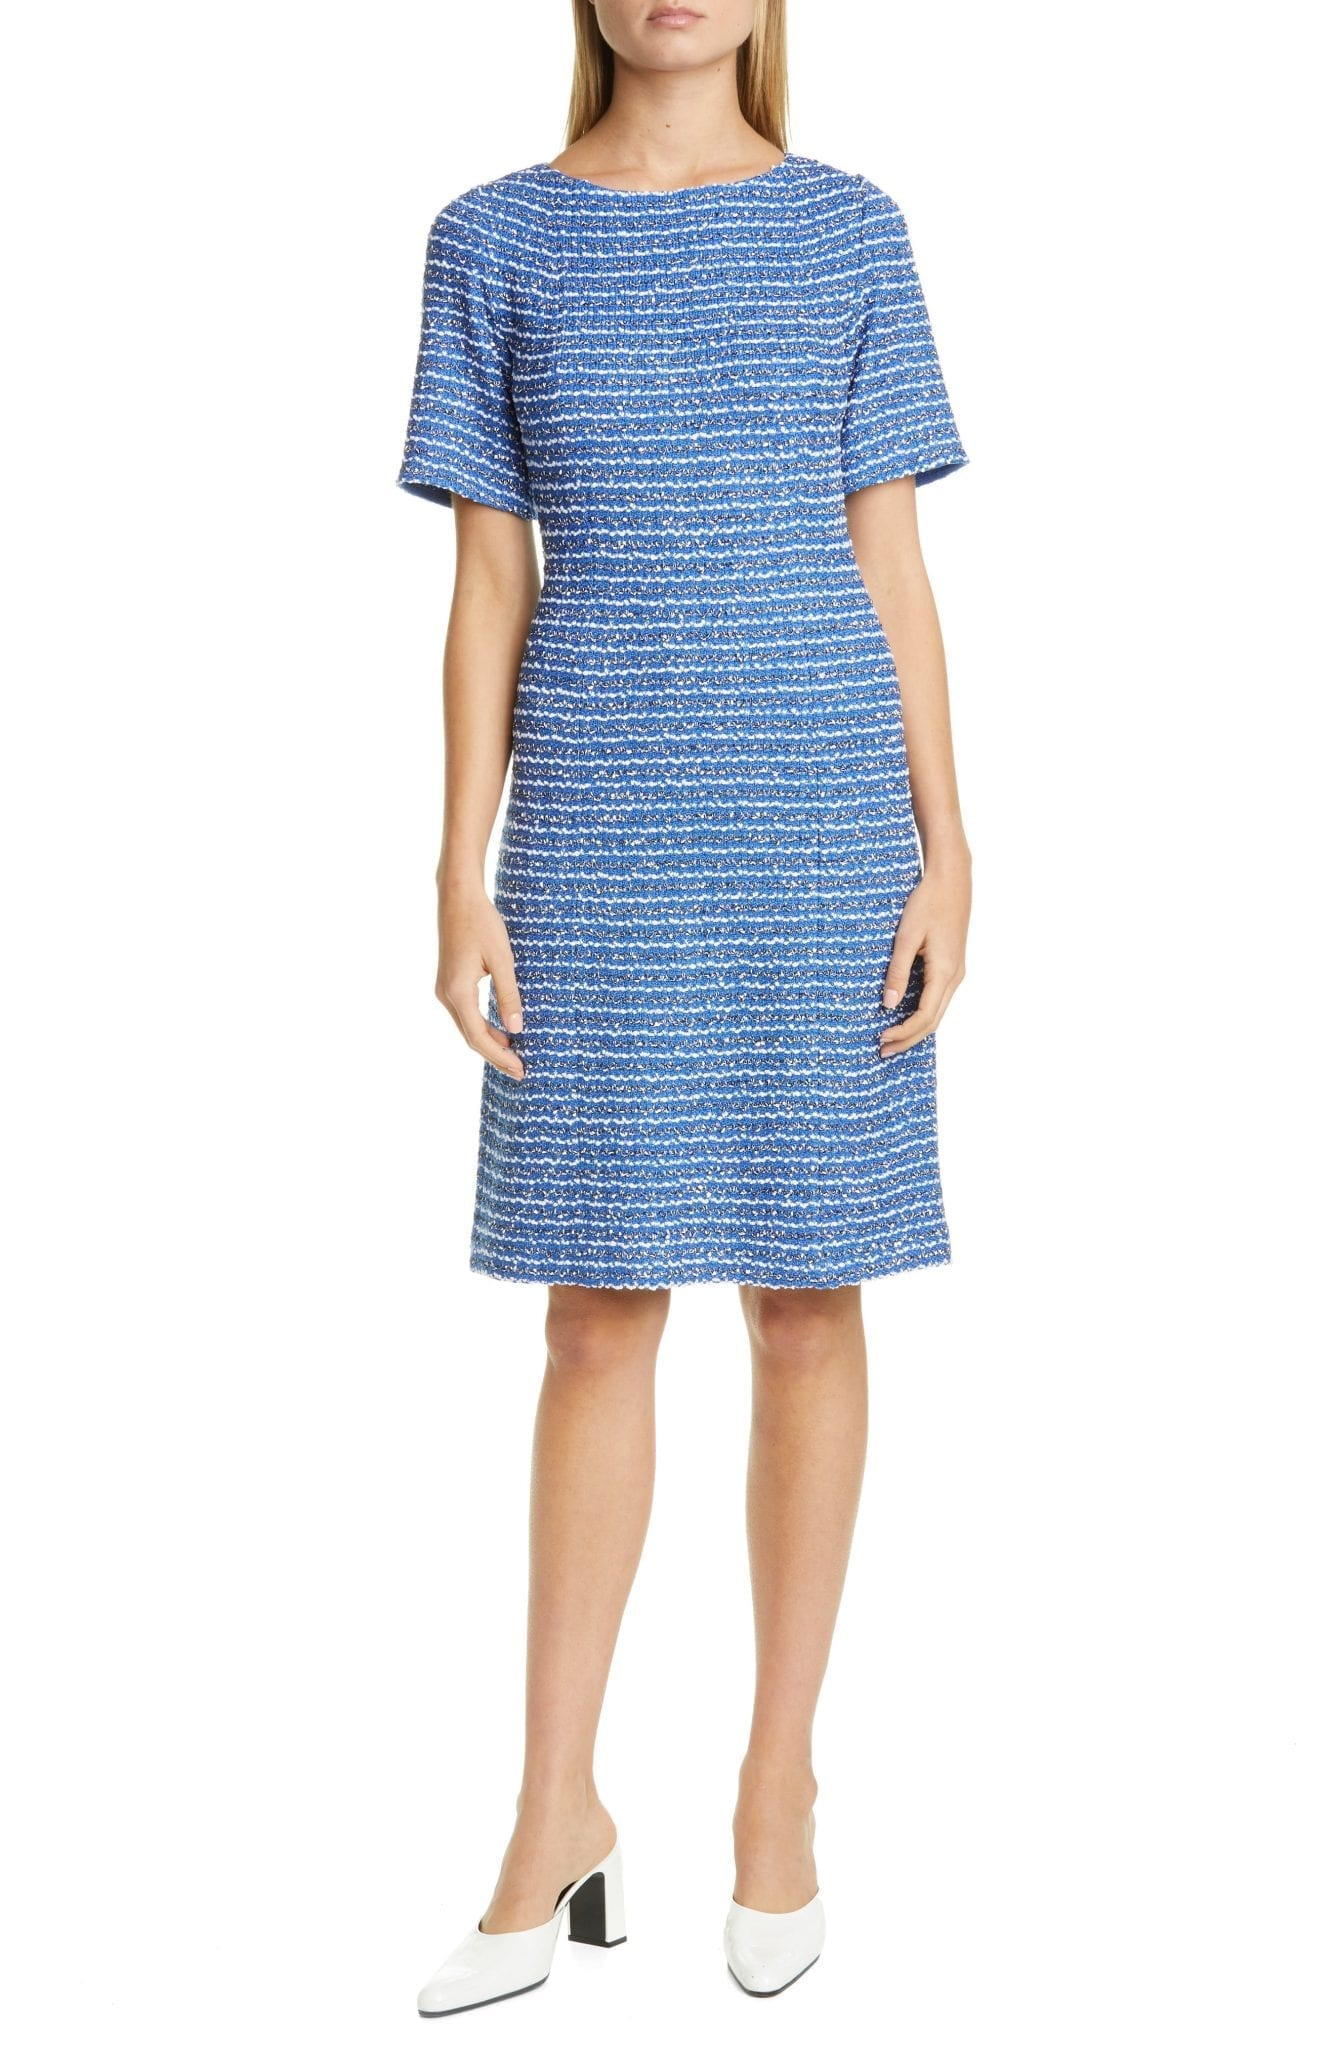 ST. JOHN COLLECTION Butterfly Ribbon Tweed Knit A-Line Dress